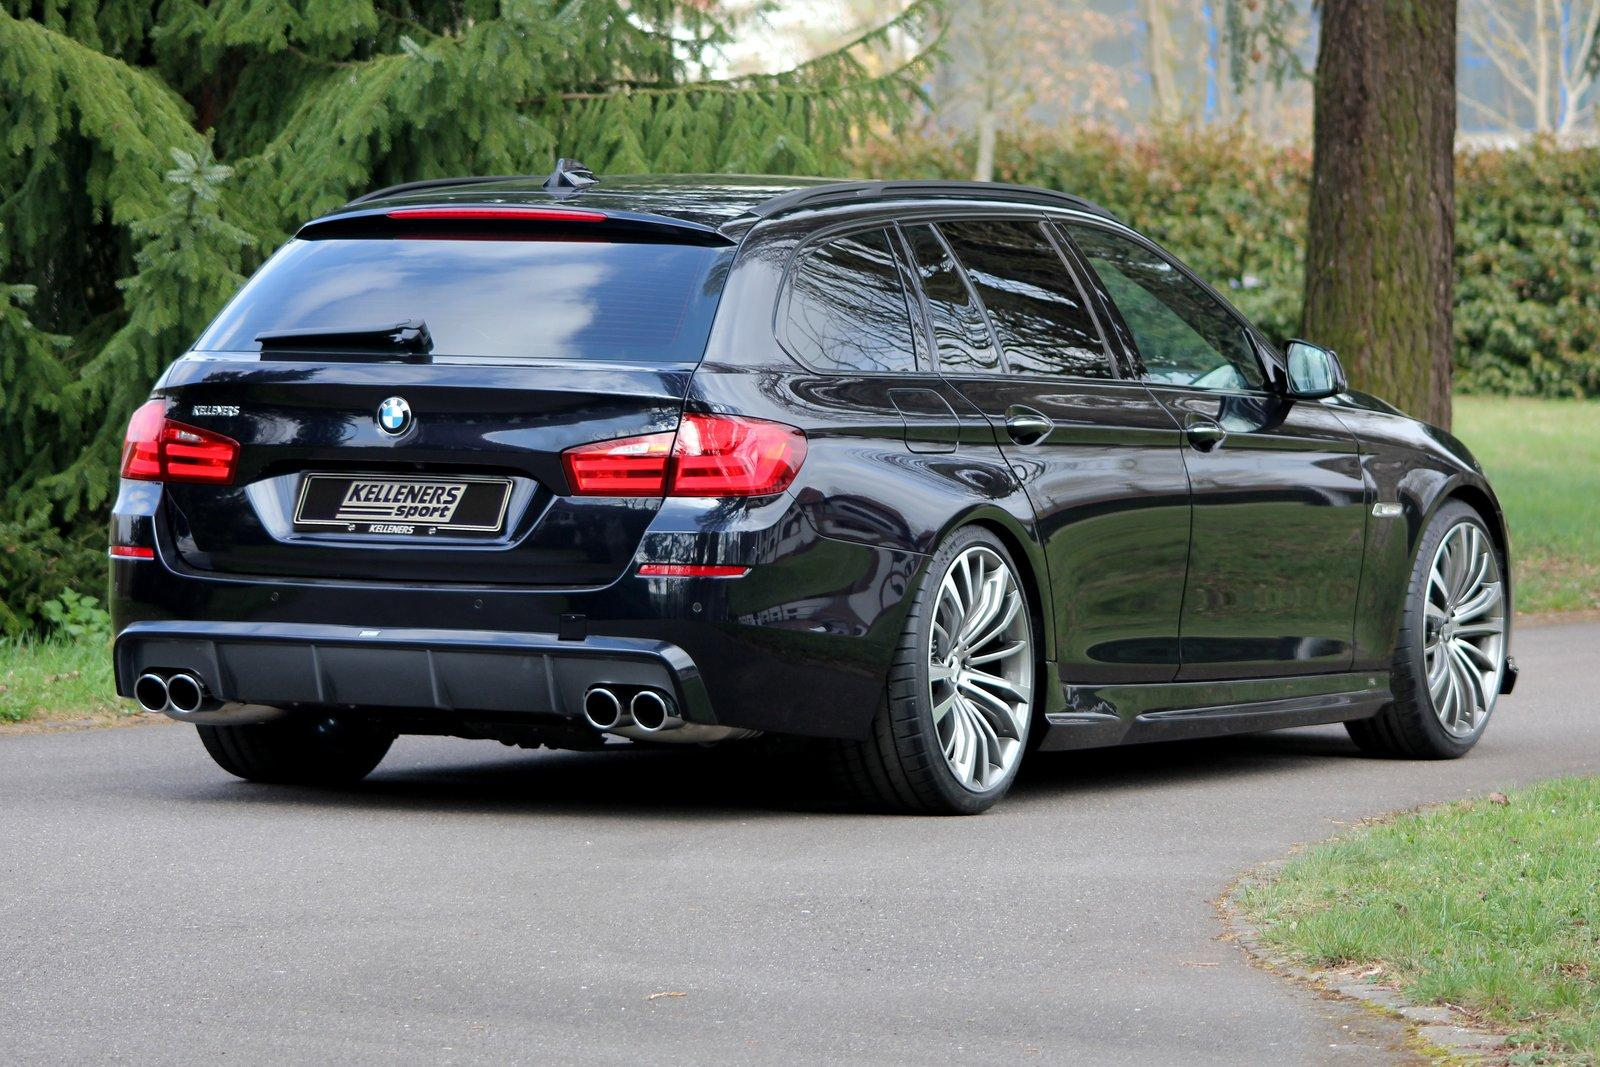 bmw 5 series touring f11 tuning by kelleners sport car tuning styling